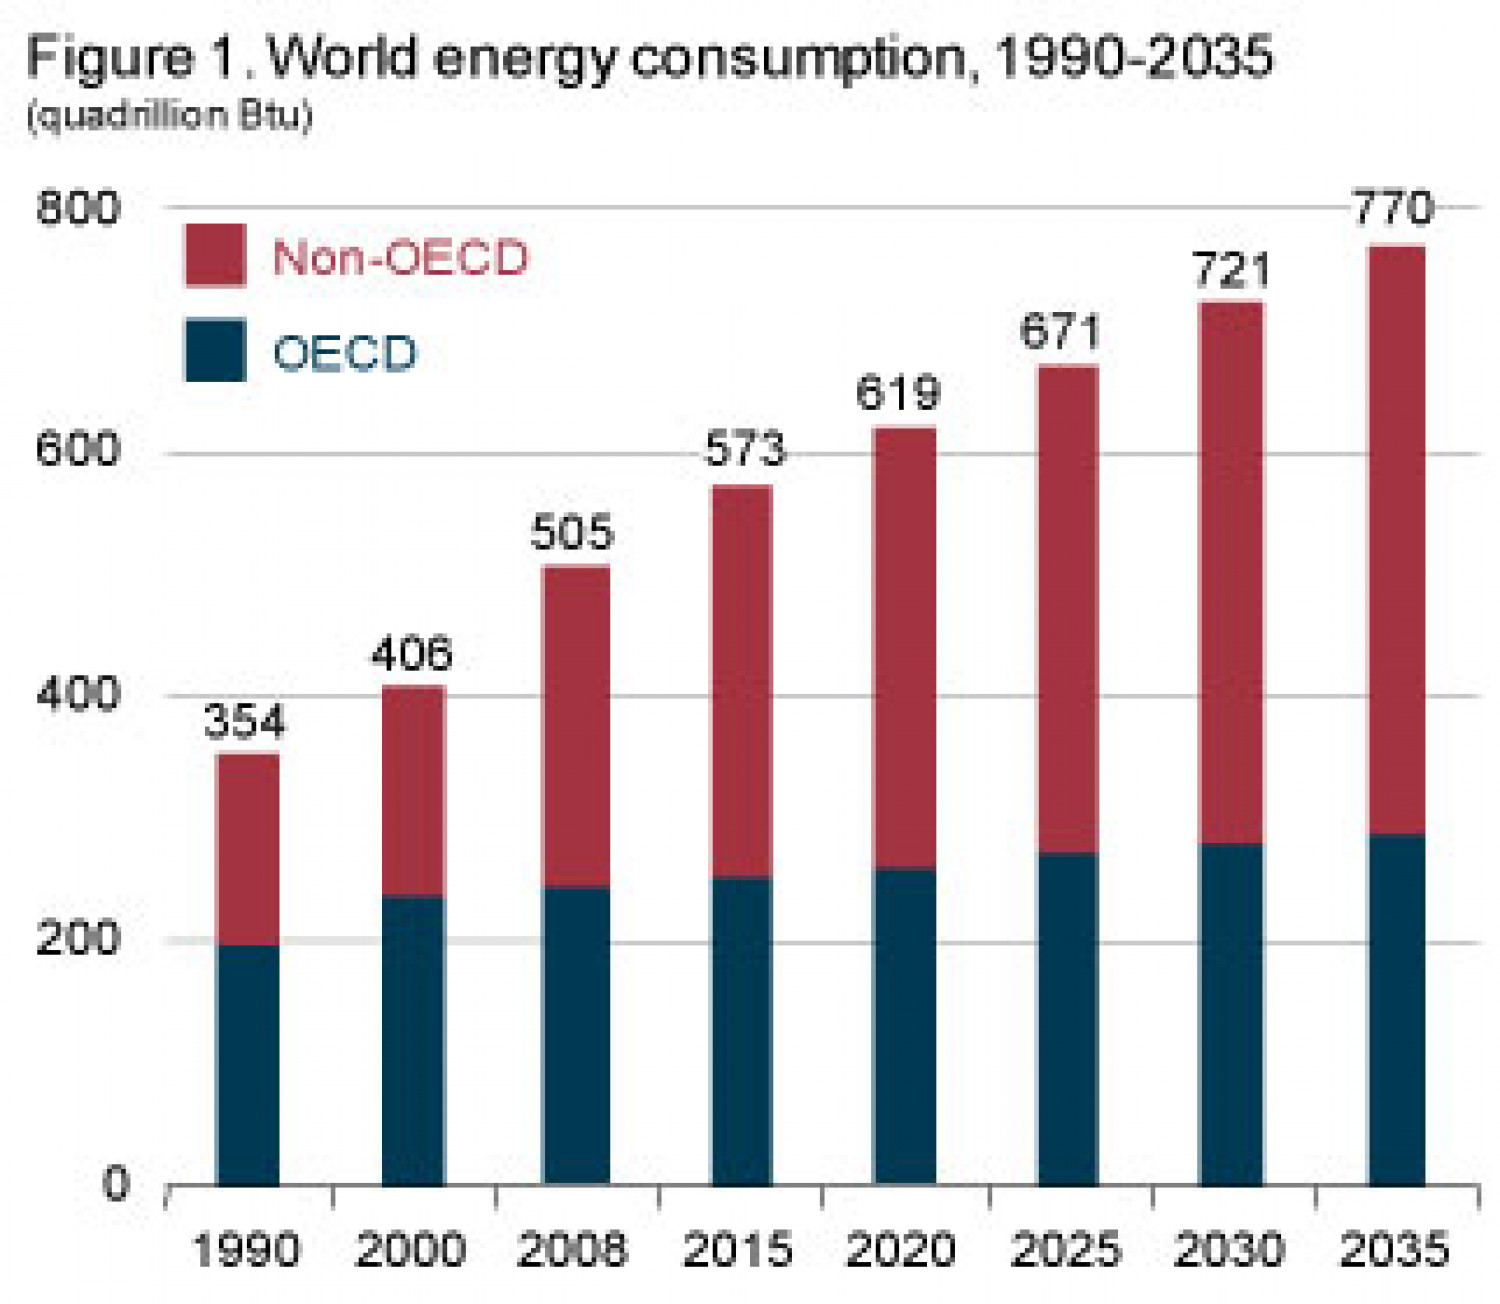 World Energy Consumption, 1990-2035 (Quadrillion Btu) Infographic